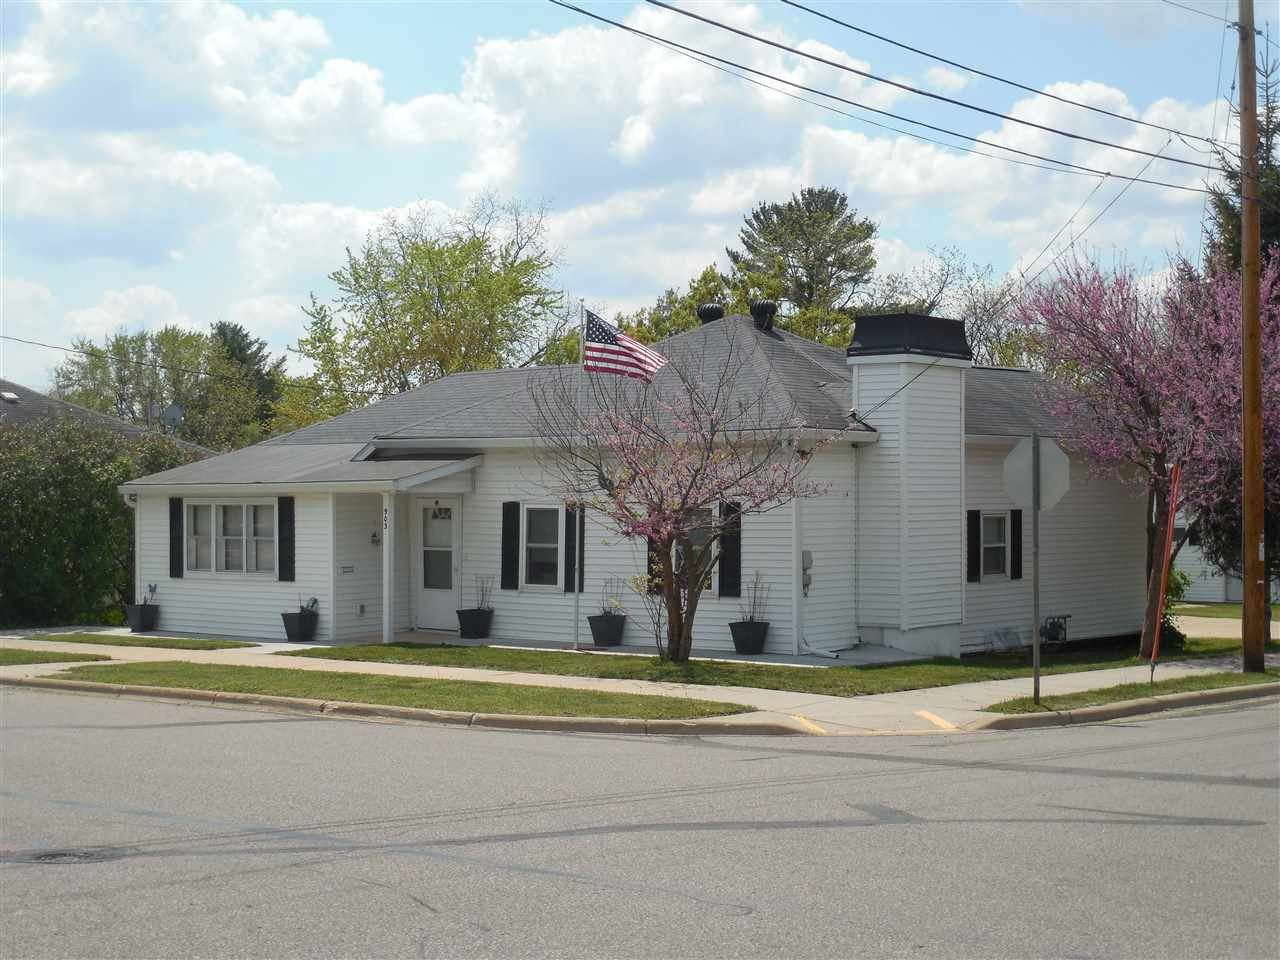 903 Hollister Ave, Tomah, WI 54660-1933 - #: 1909392